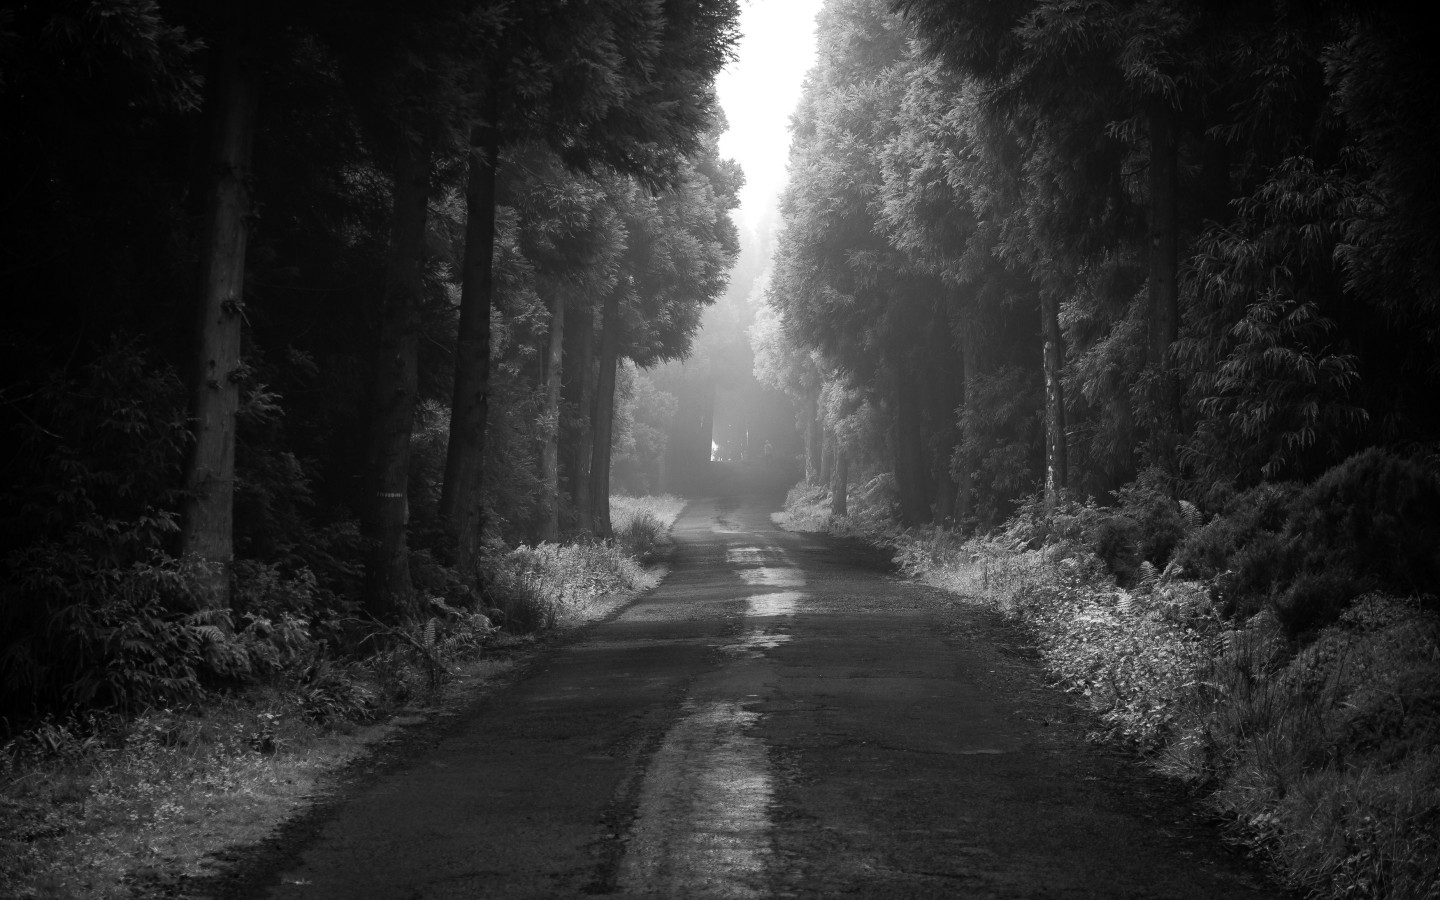 Road thru the dark forest wallpaper 1440x900